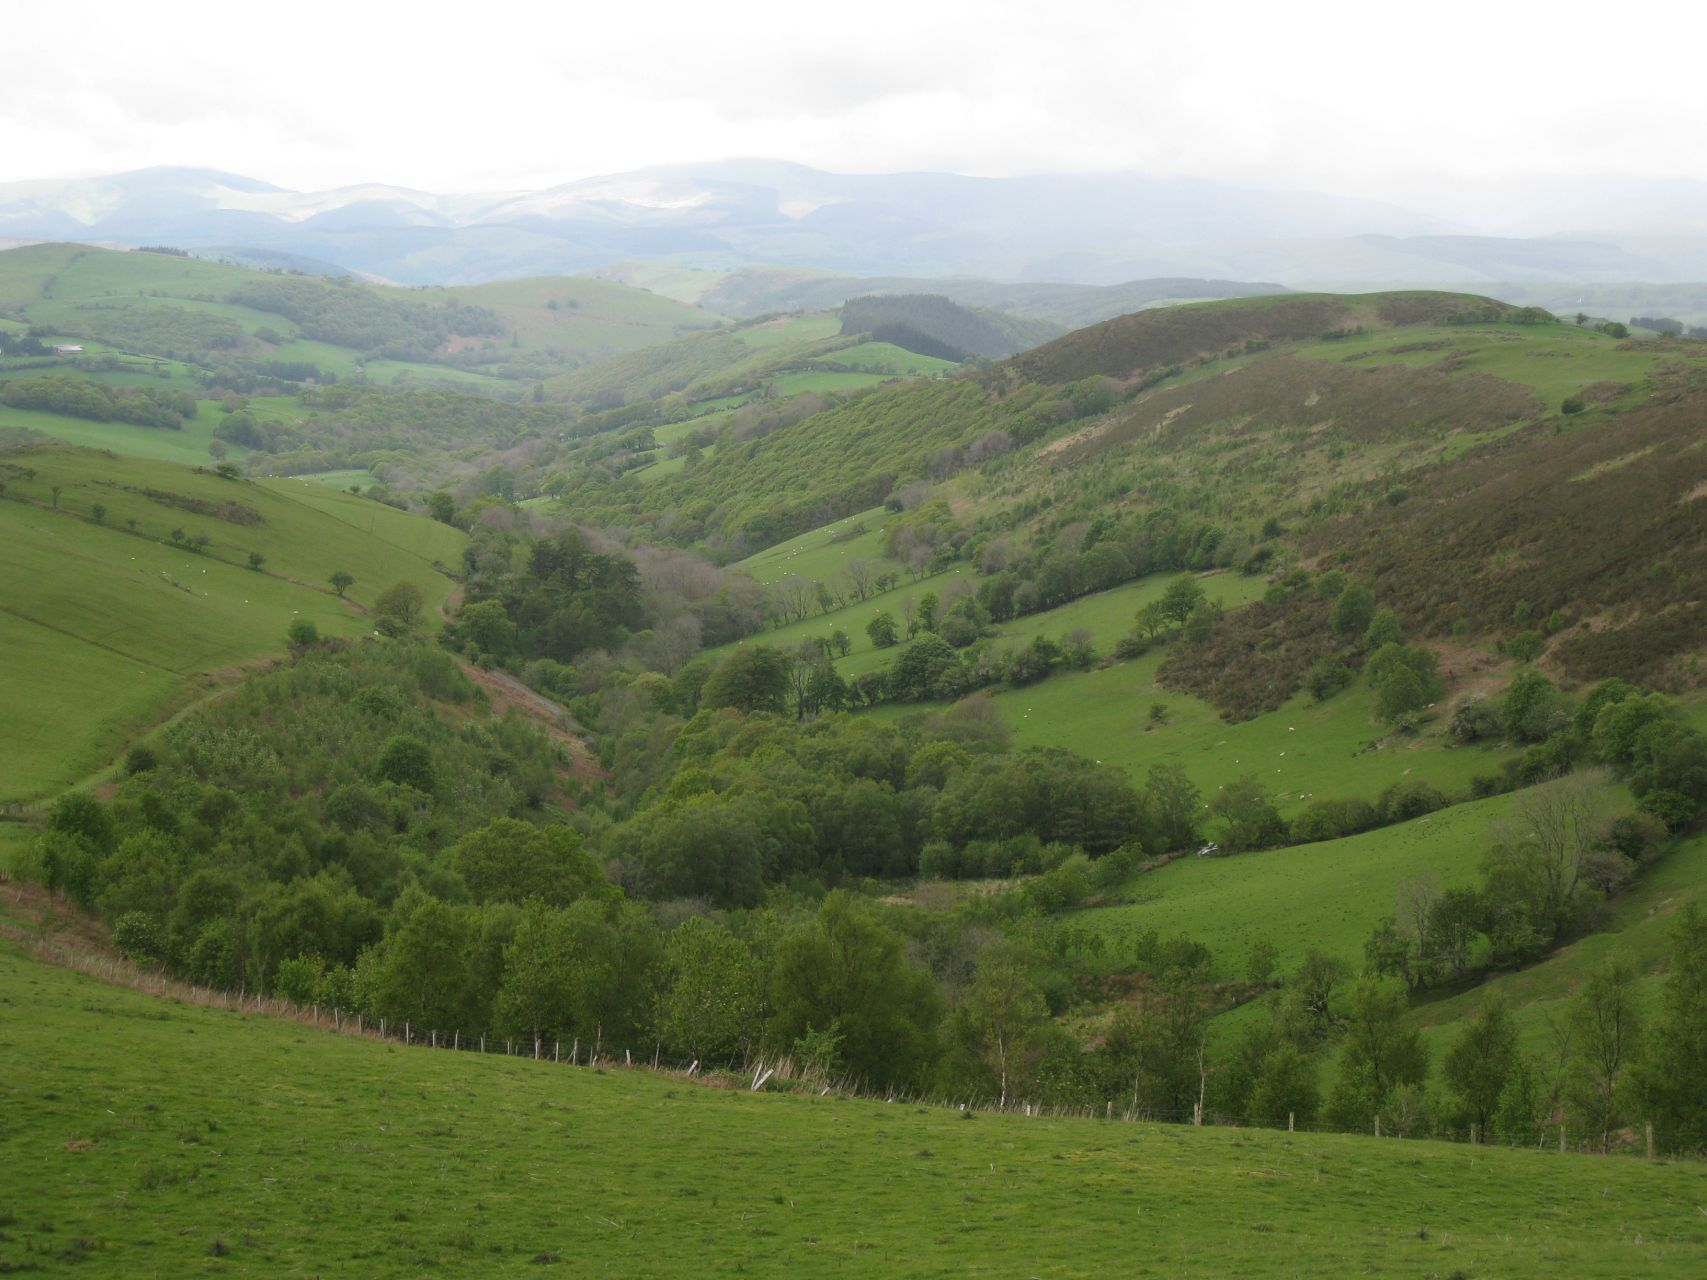 Day 4 - Looking down into Afon Dulas valley on massively steep climb up © Paul Bonwick